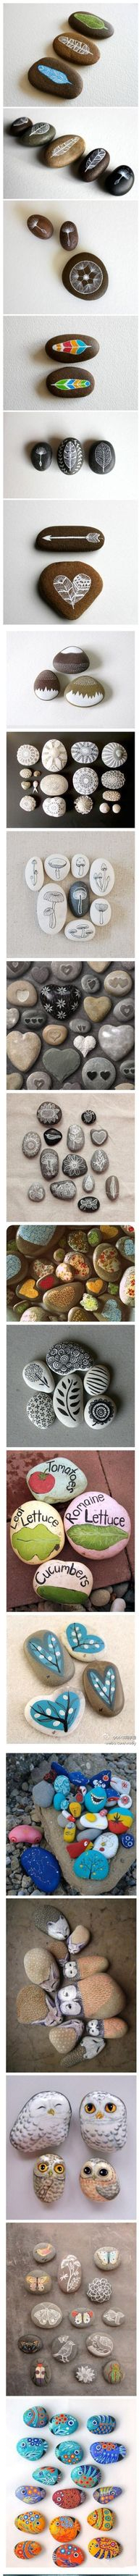 pebble art creative